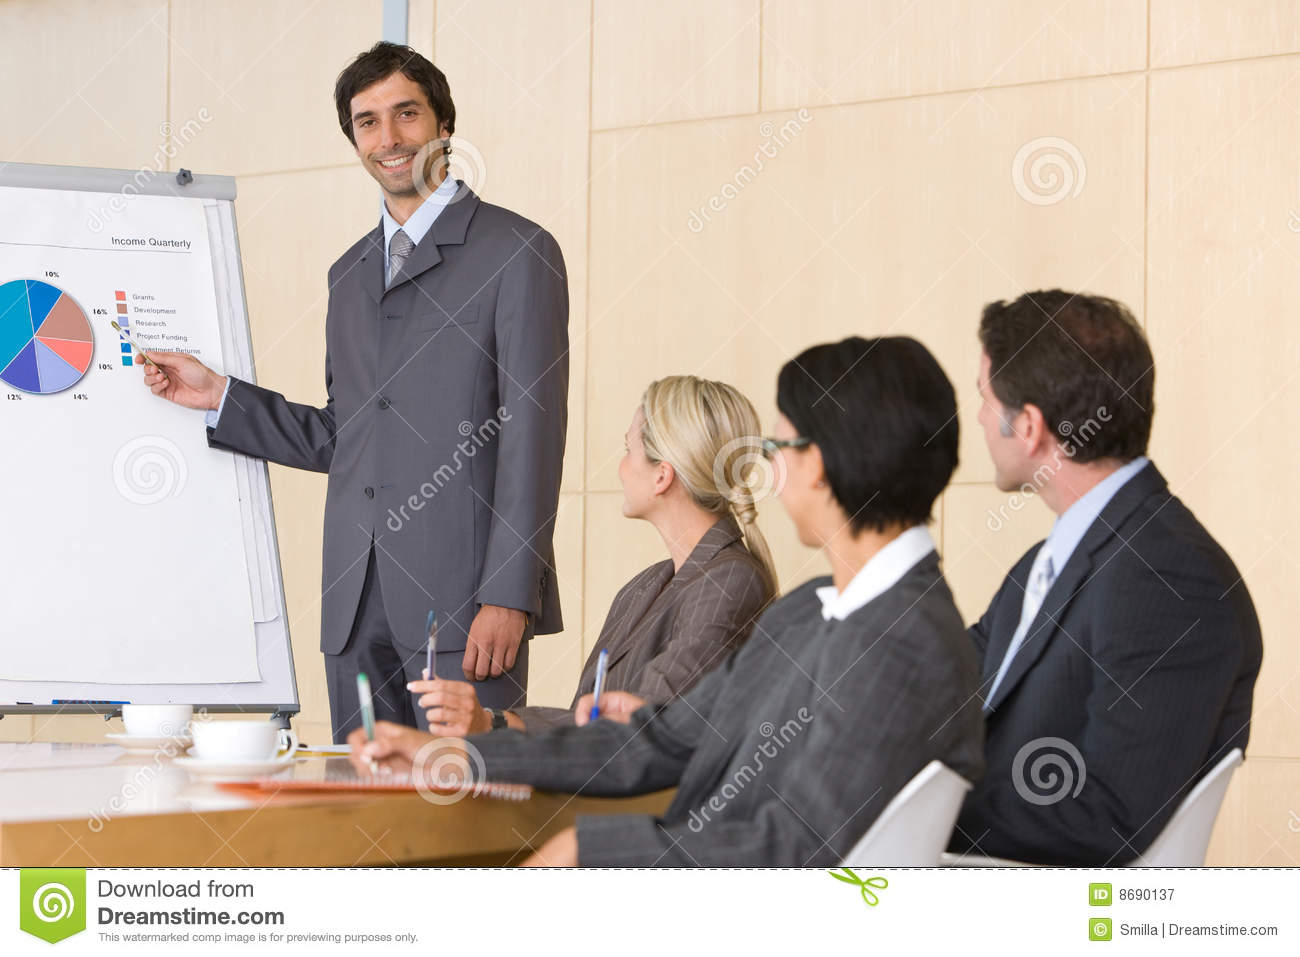 5 Tips for Giving Your First Business Presentation